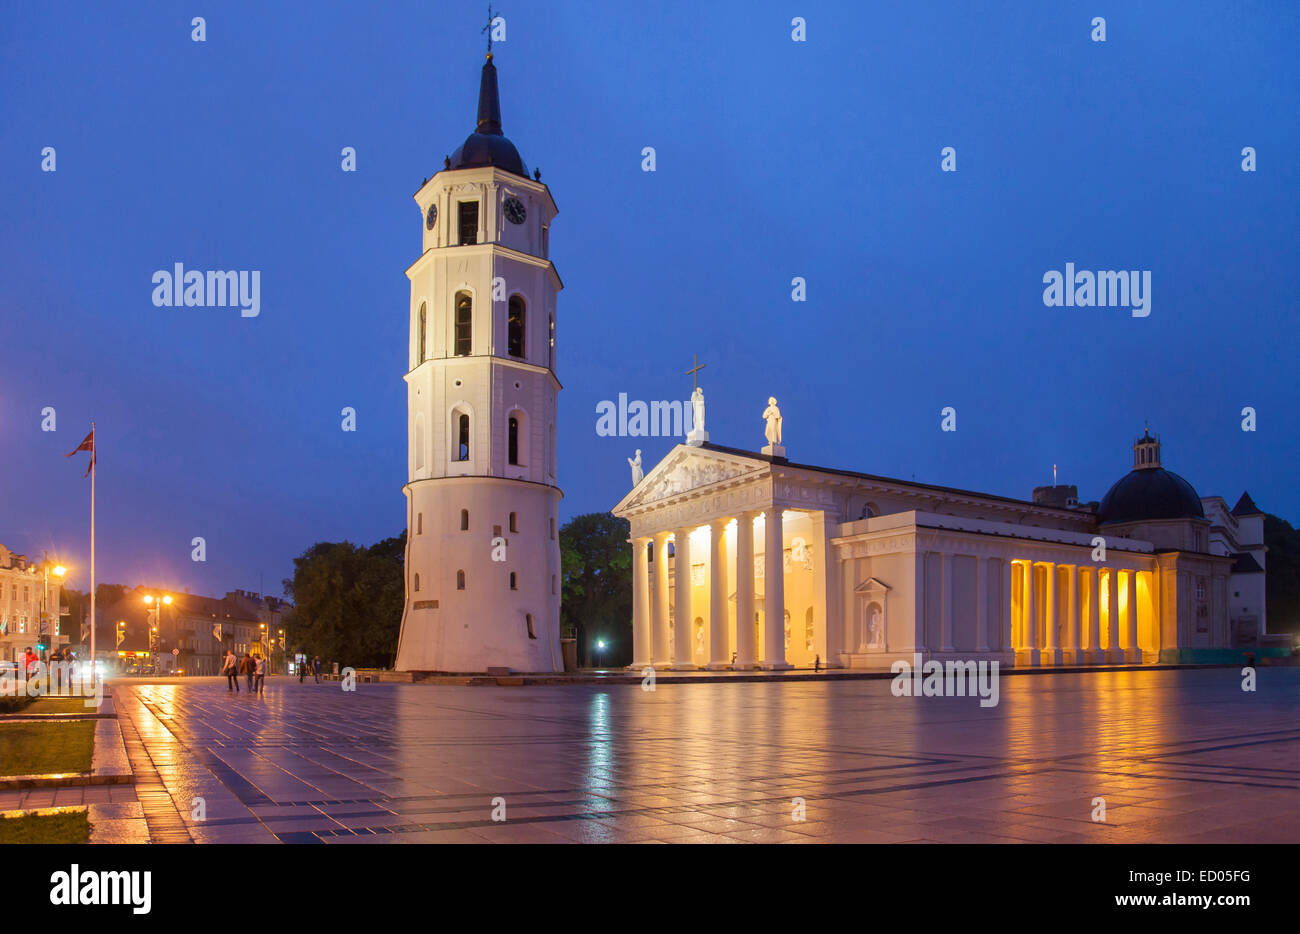 Lithuania, Vilnius, Cathedral. - Stock Image